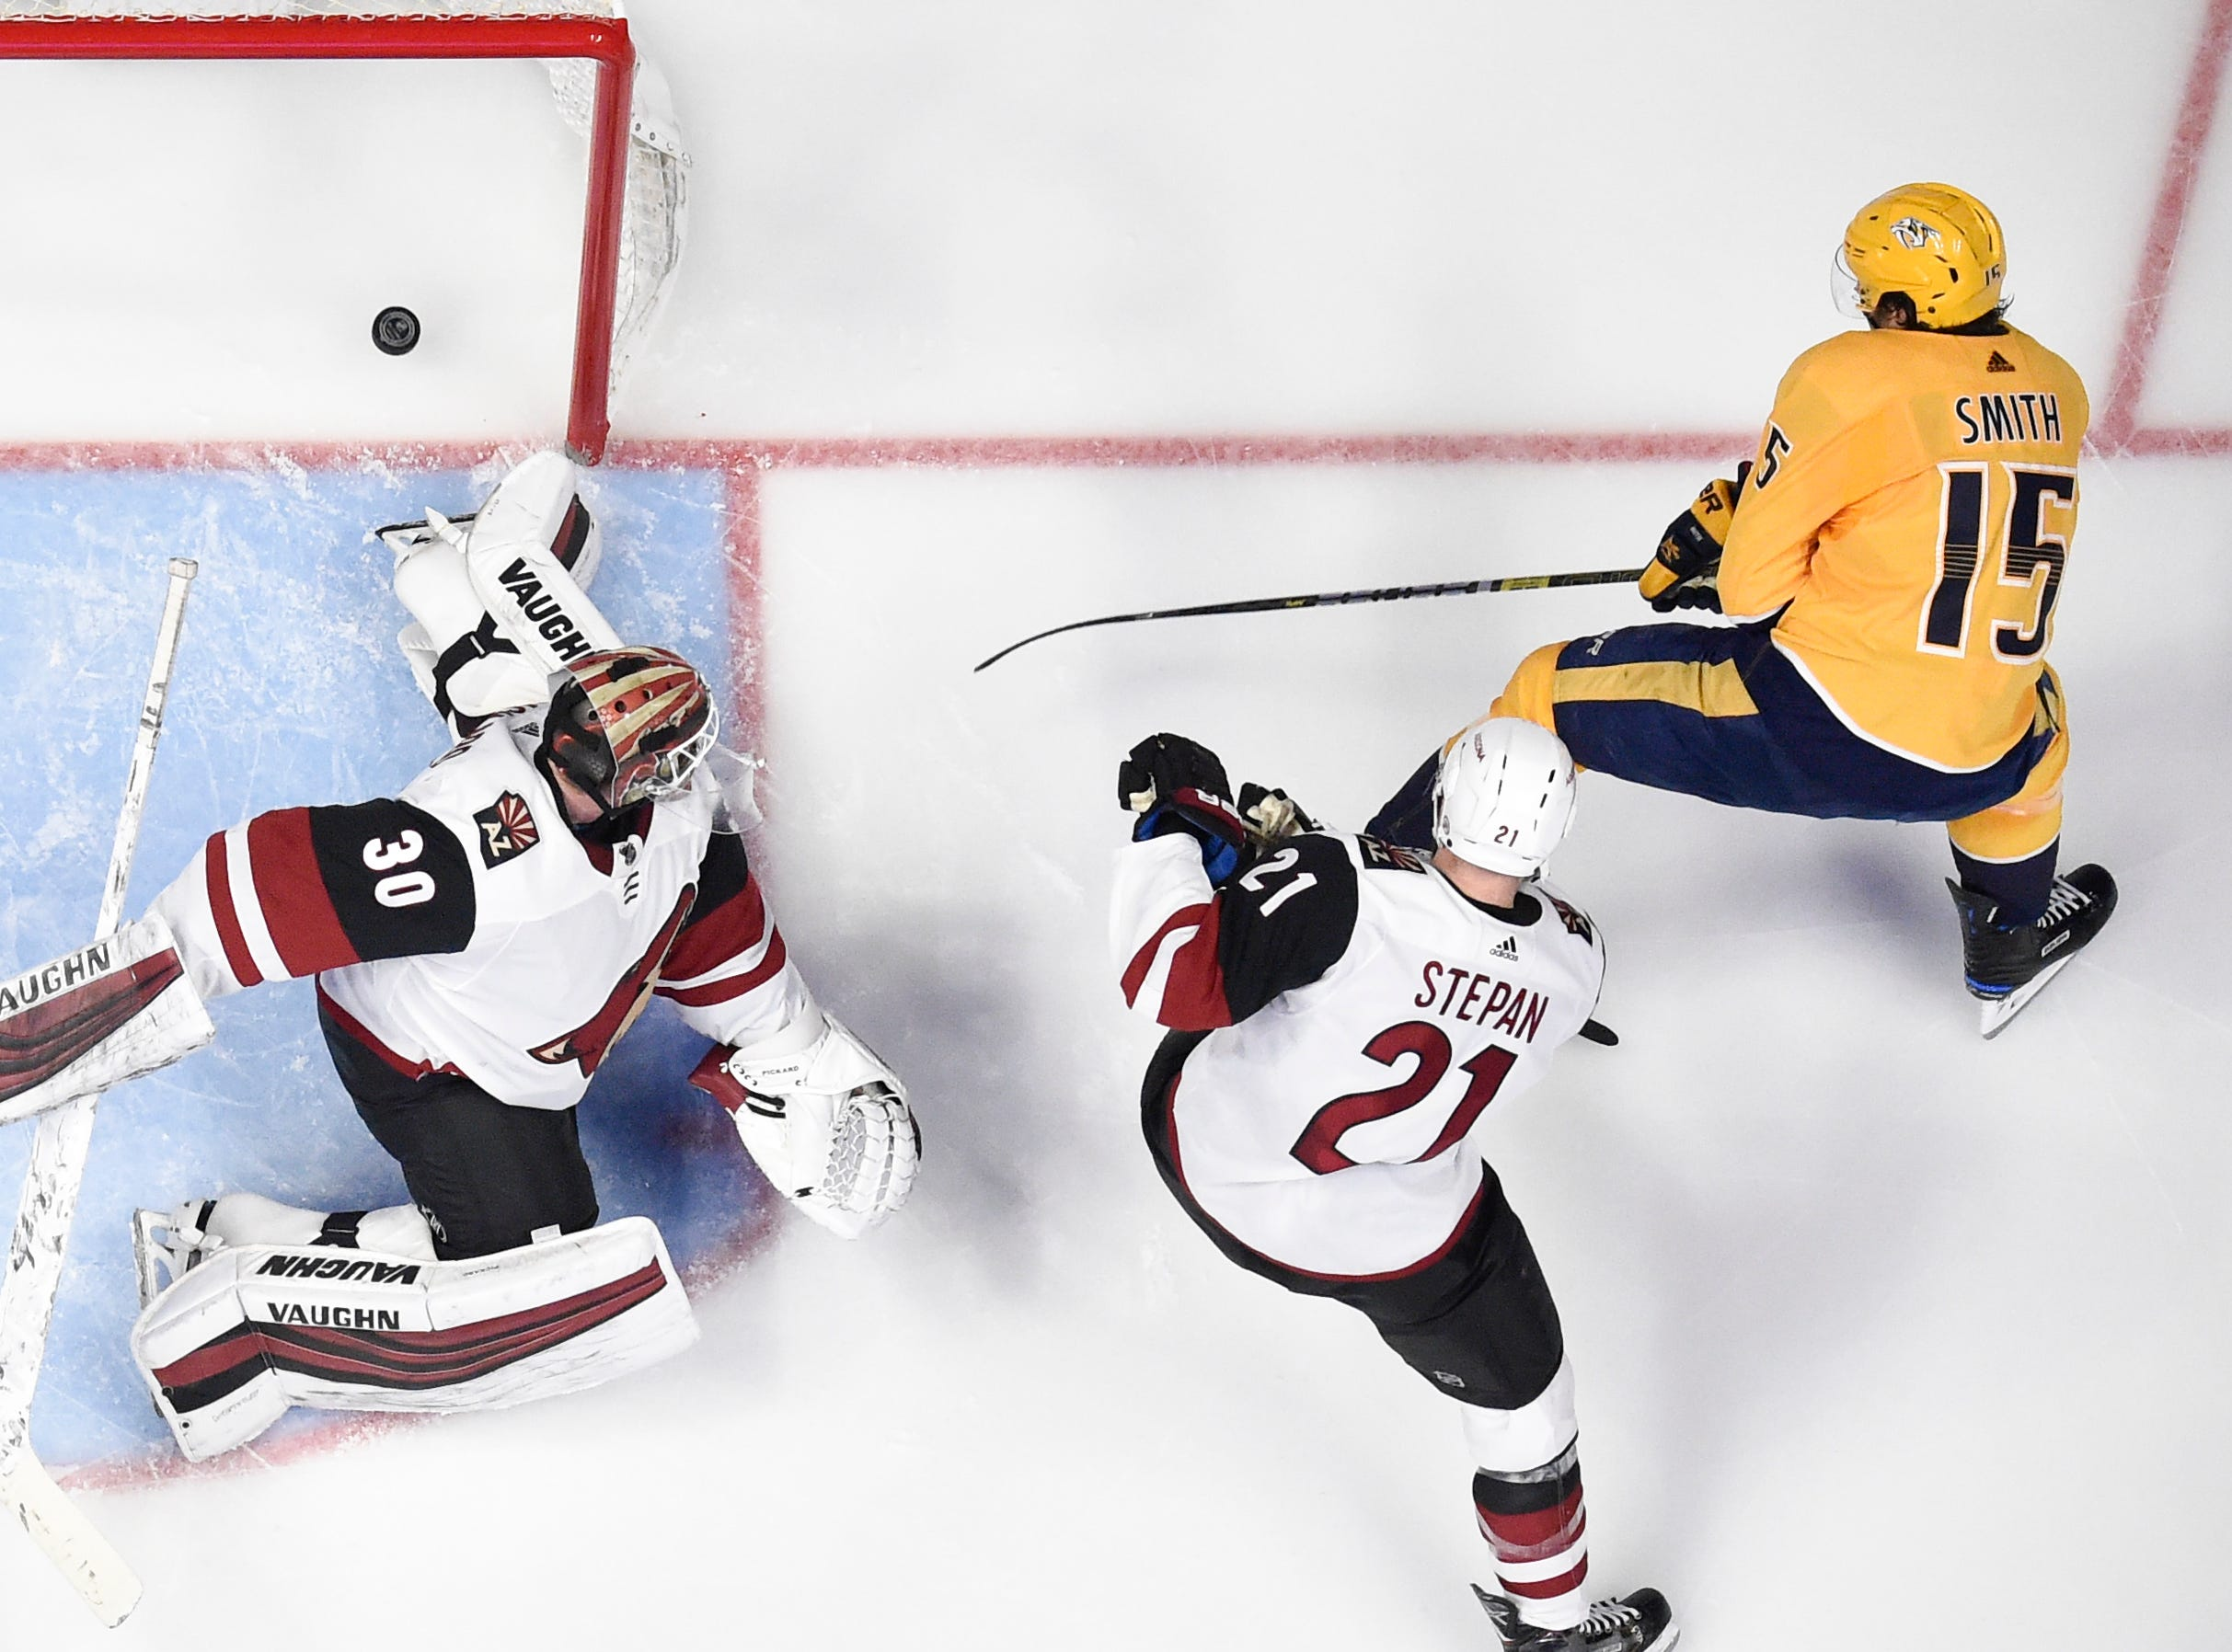 Nashville Predators right wing Craig Smith (15) scores past Arizona Coyotes goaltender Calvin Pickard (30) and center Derek Stepan (21) during the second period at Bridgestone Arena in Nashville, Tenn., Tuesday, Feb. 5, 2019.